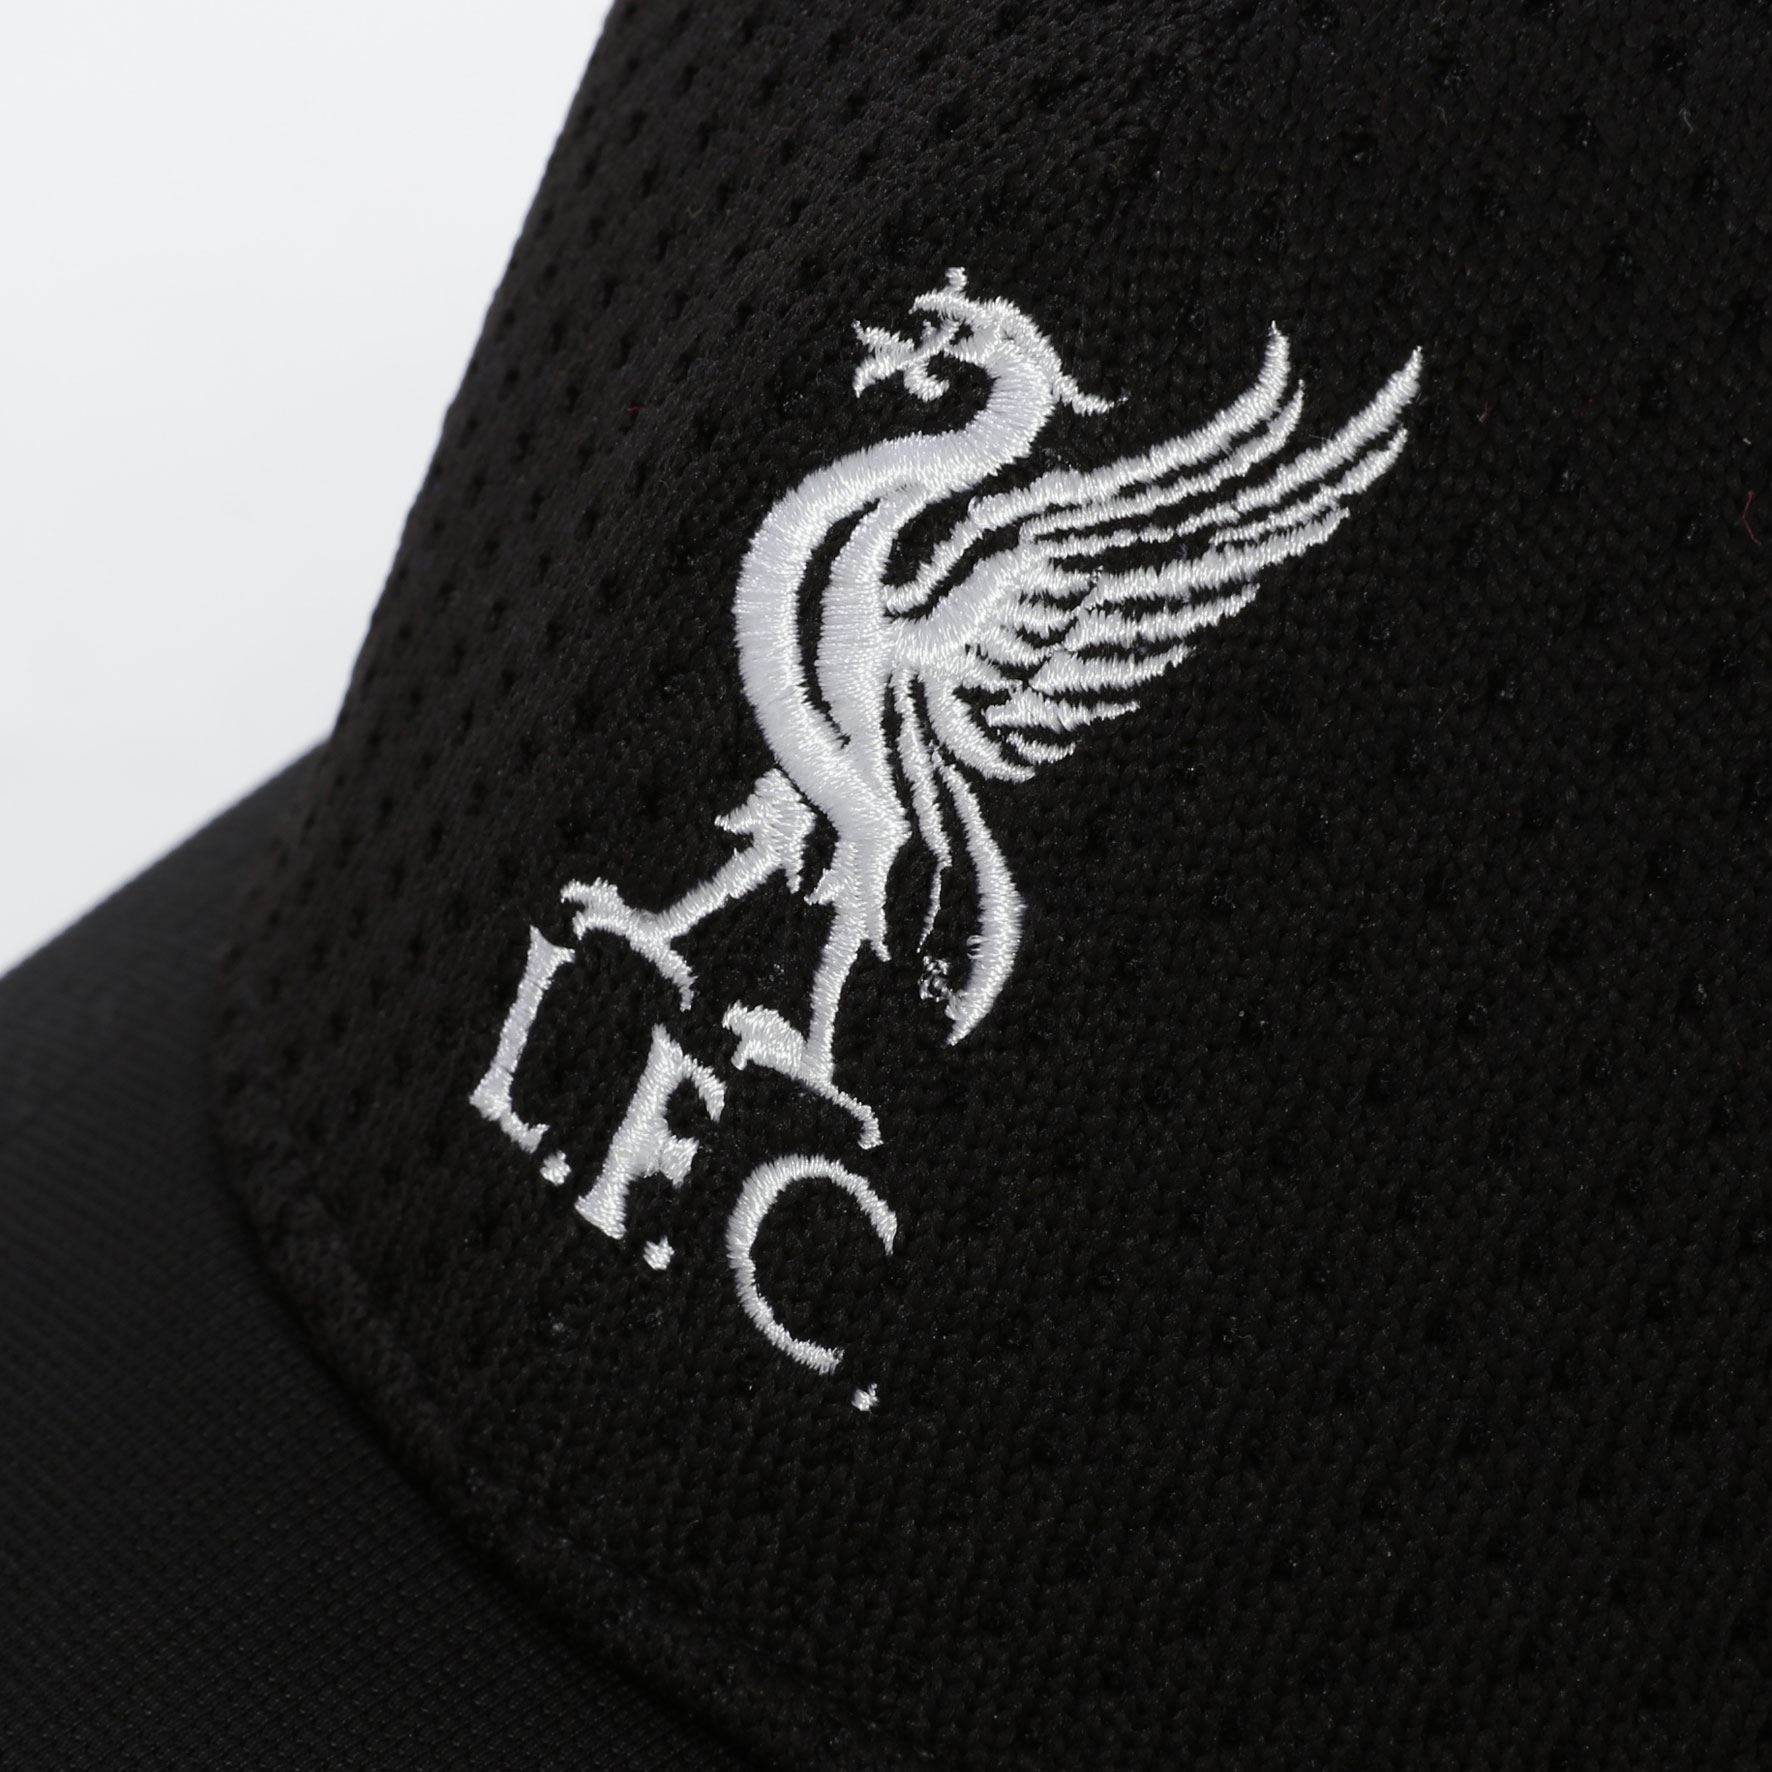 c079731f417 Liverpool FC Black Klopp Cap LFC Offcial.   32.50. Click on the image below  to get zoomed view